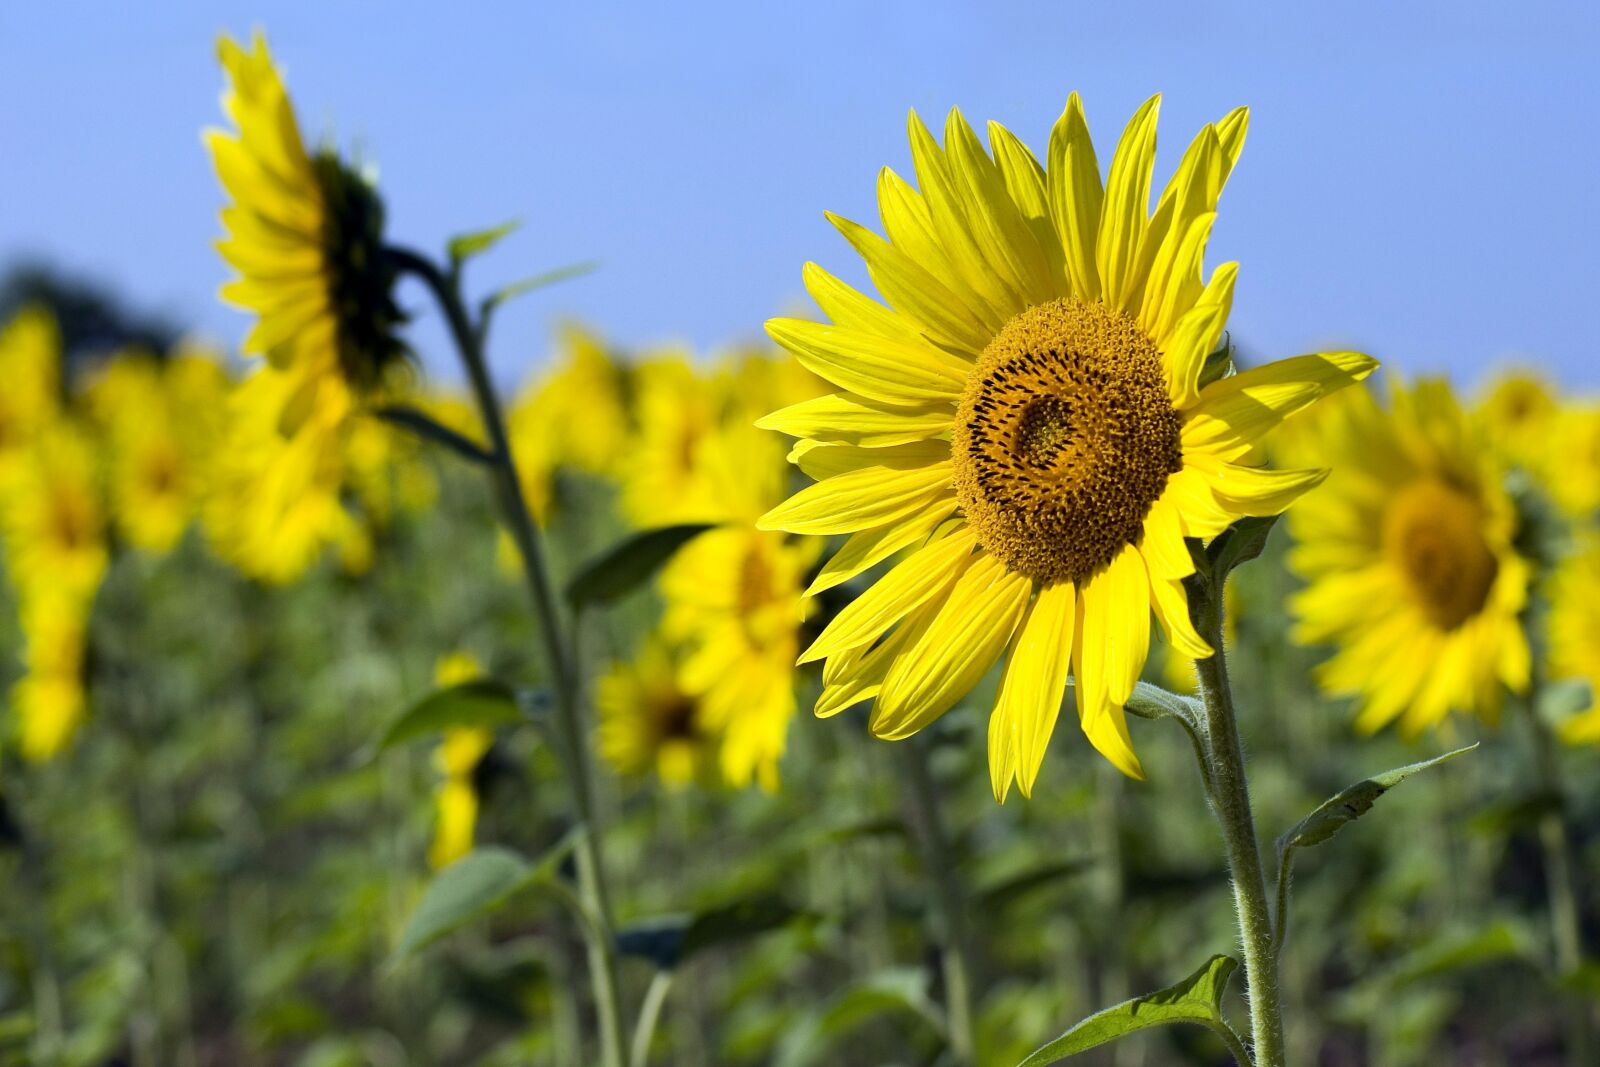 """Pentax K10D sample photo. """"Sunflower, fields, agriculture"""" photography"""